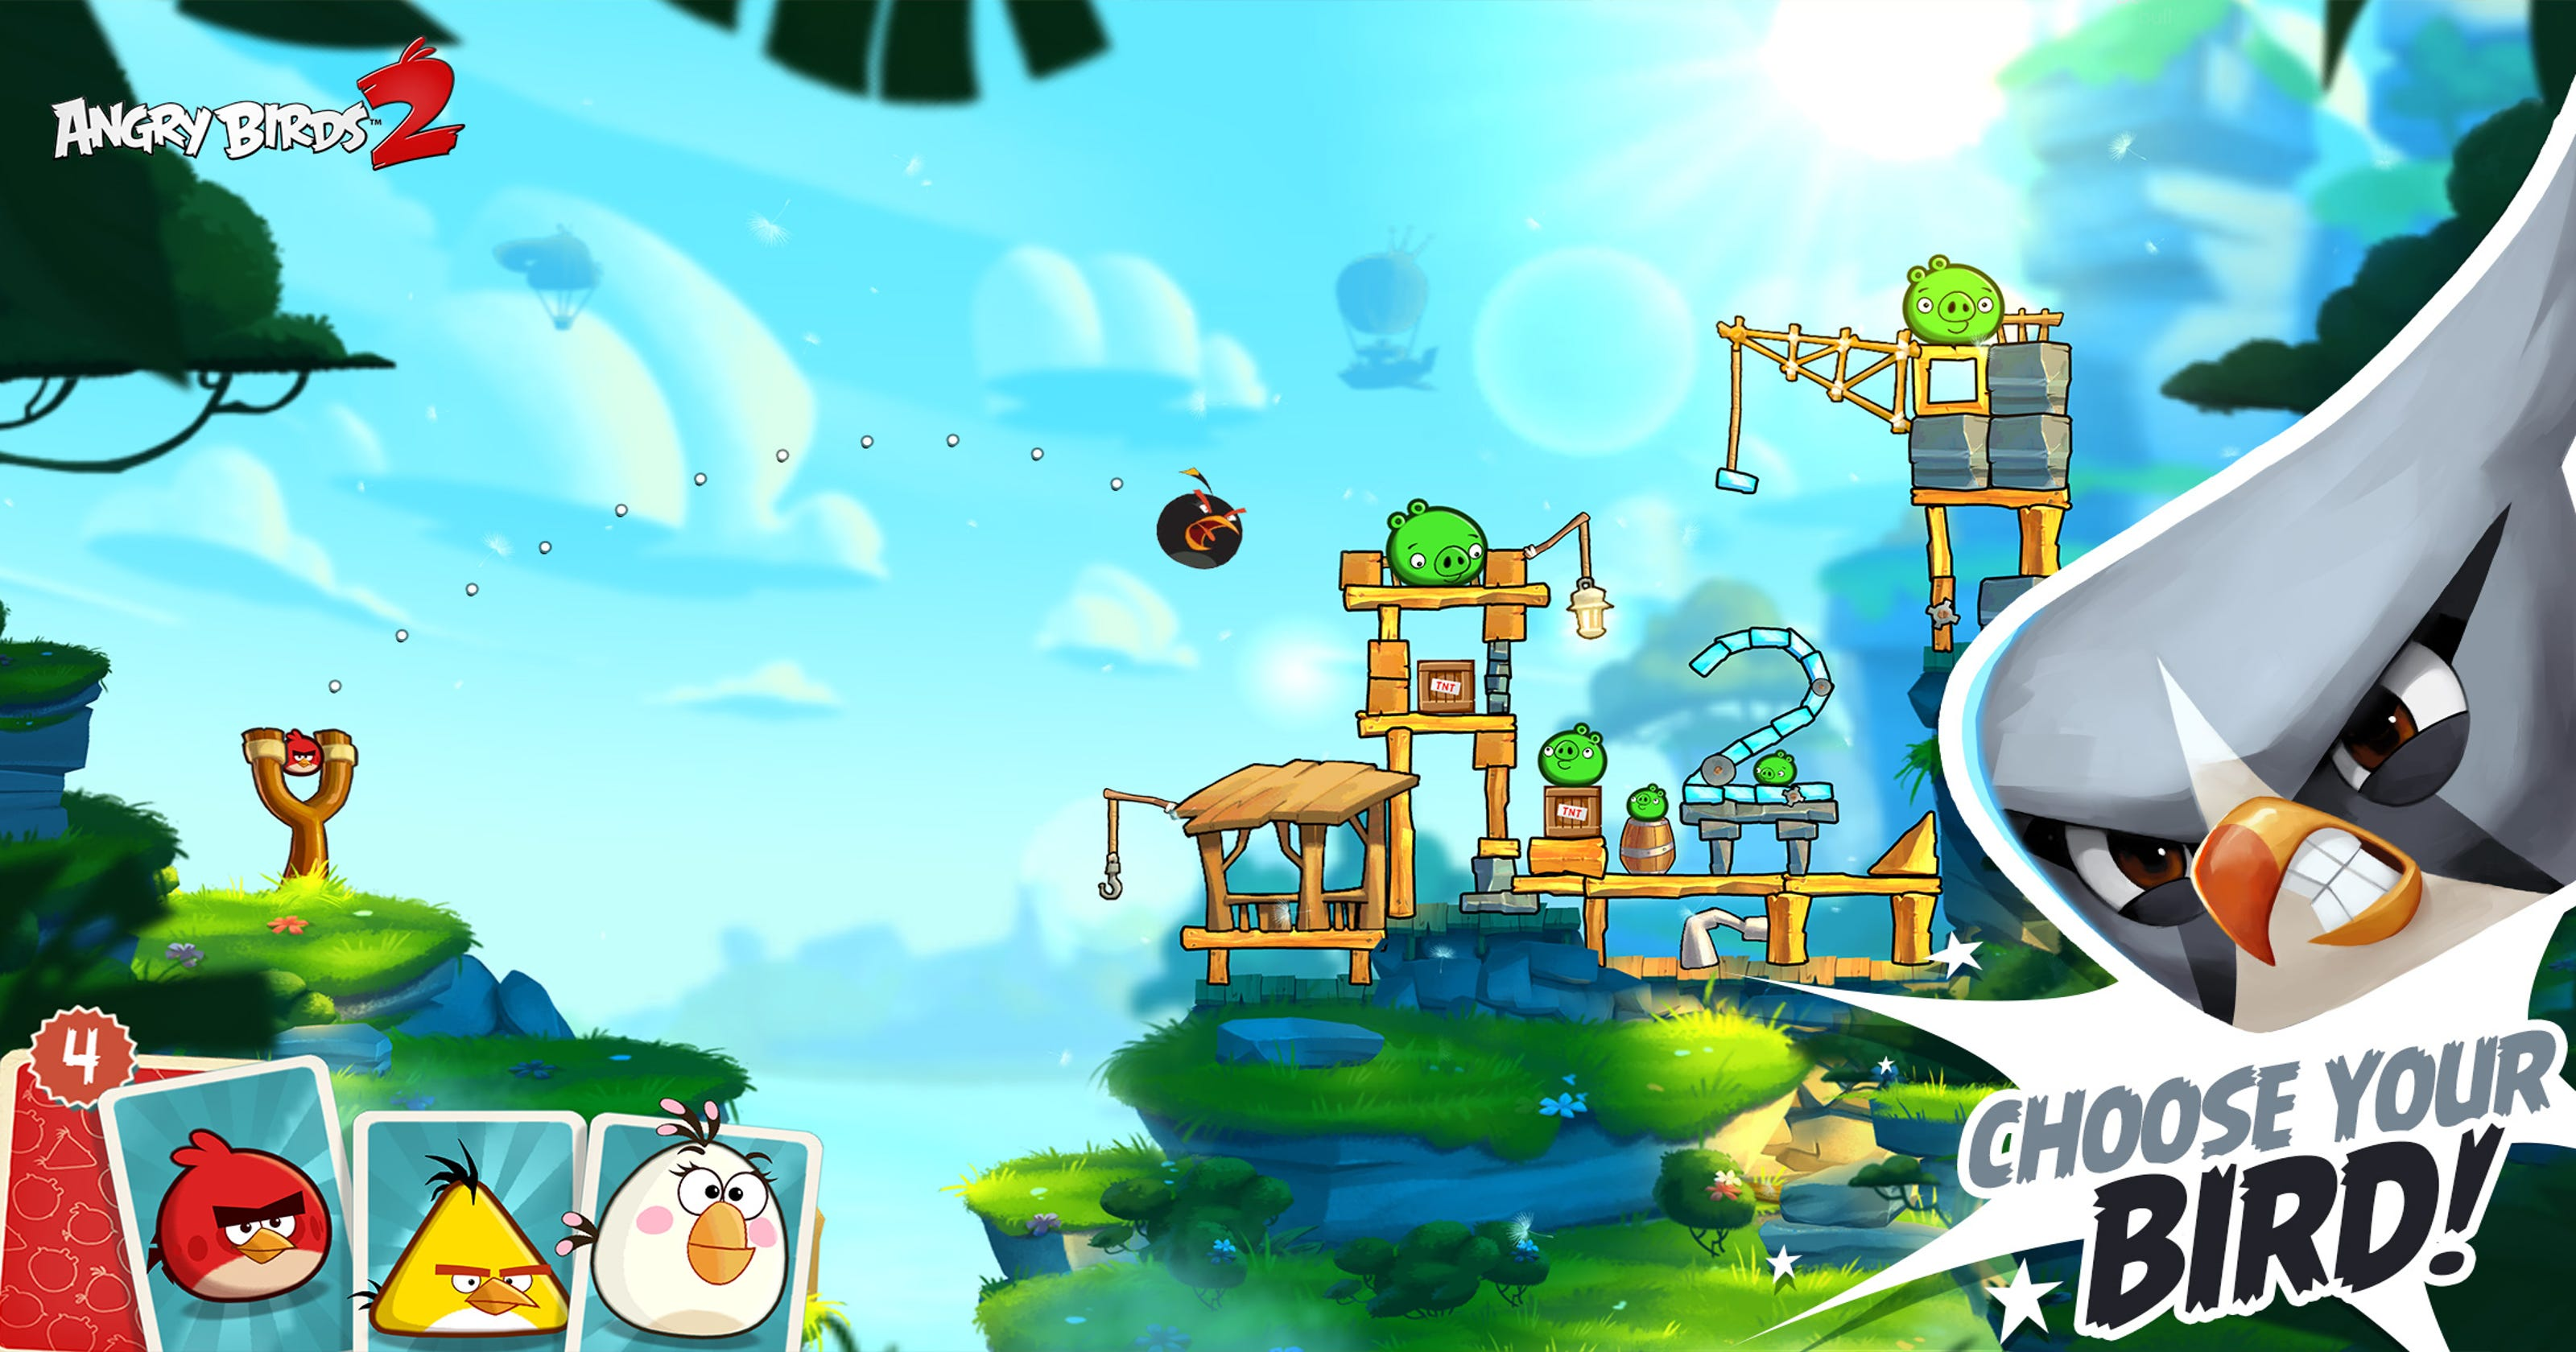 Downloads of 'Angry Birds 2' top 10 million